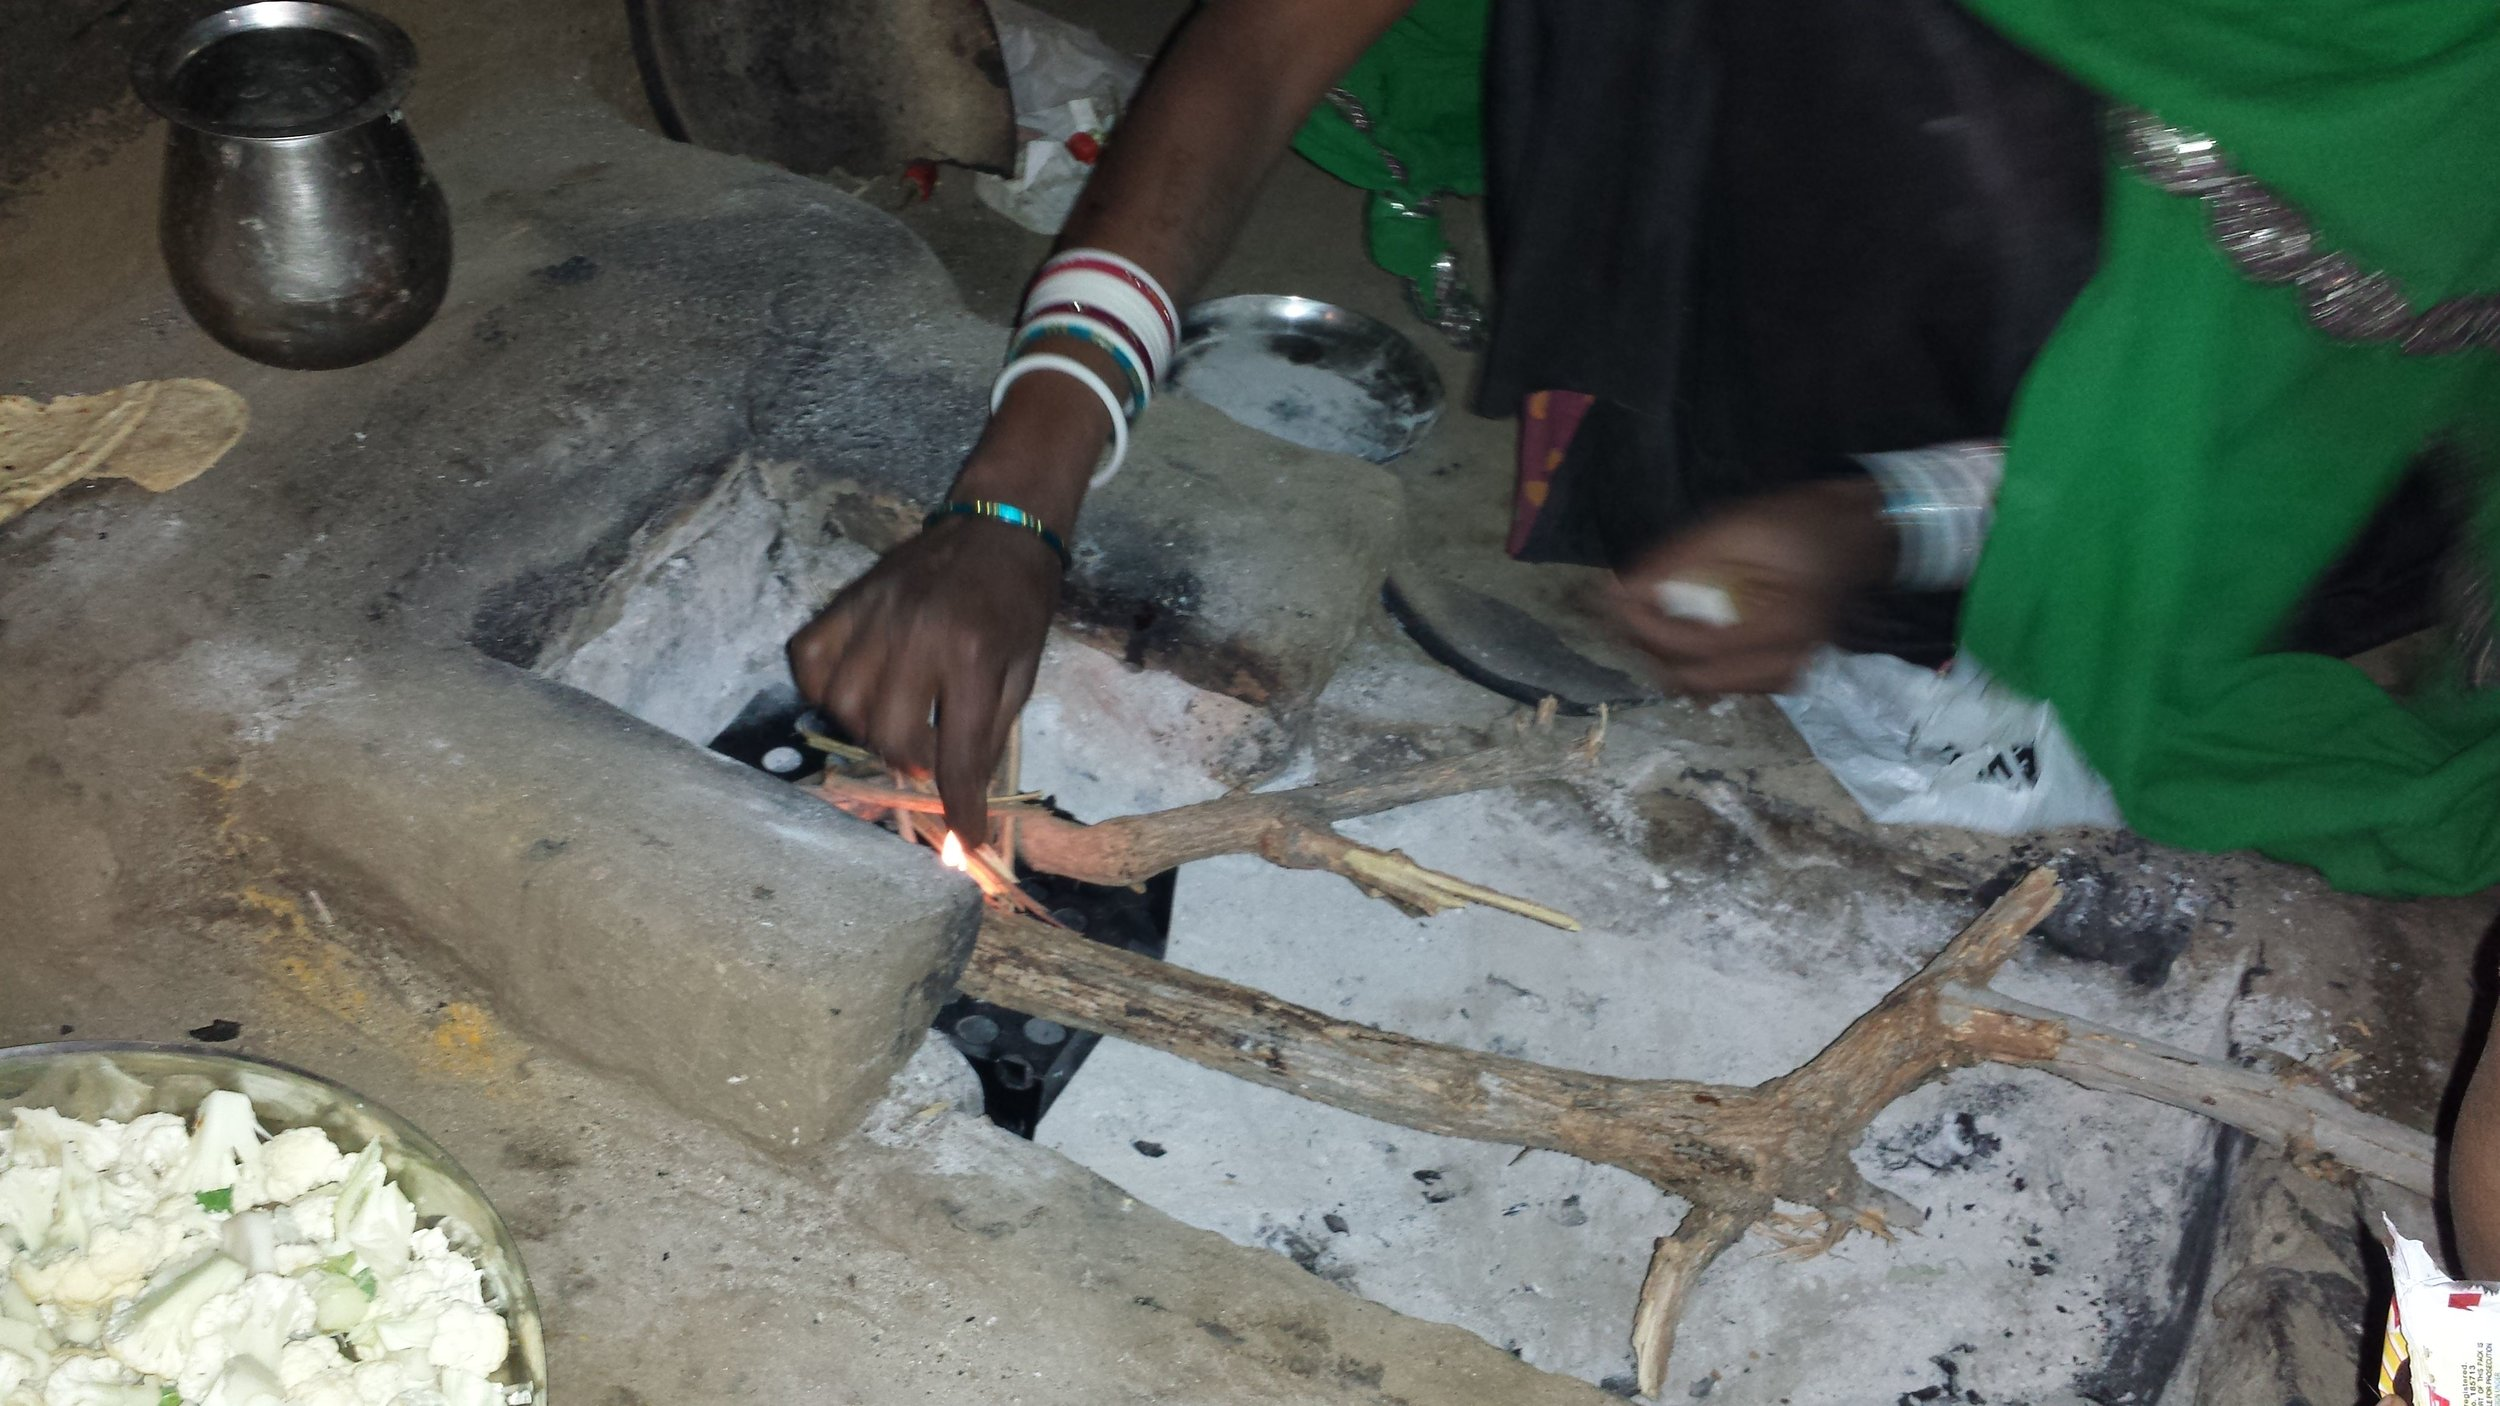 Using the MA in a traditional stove